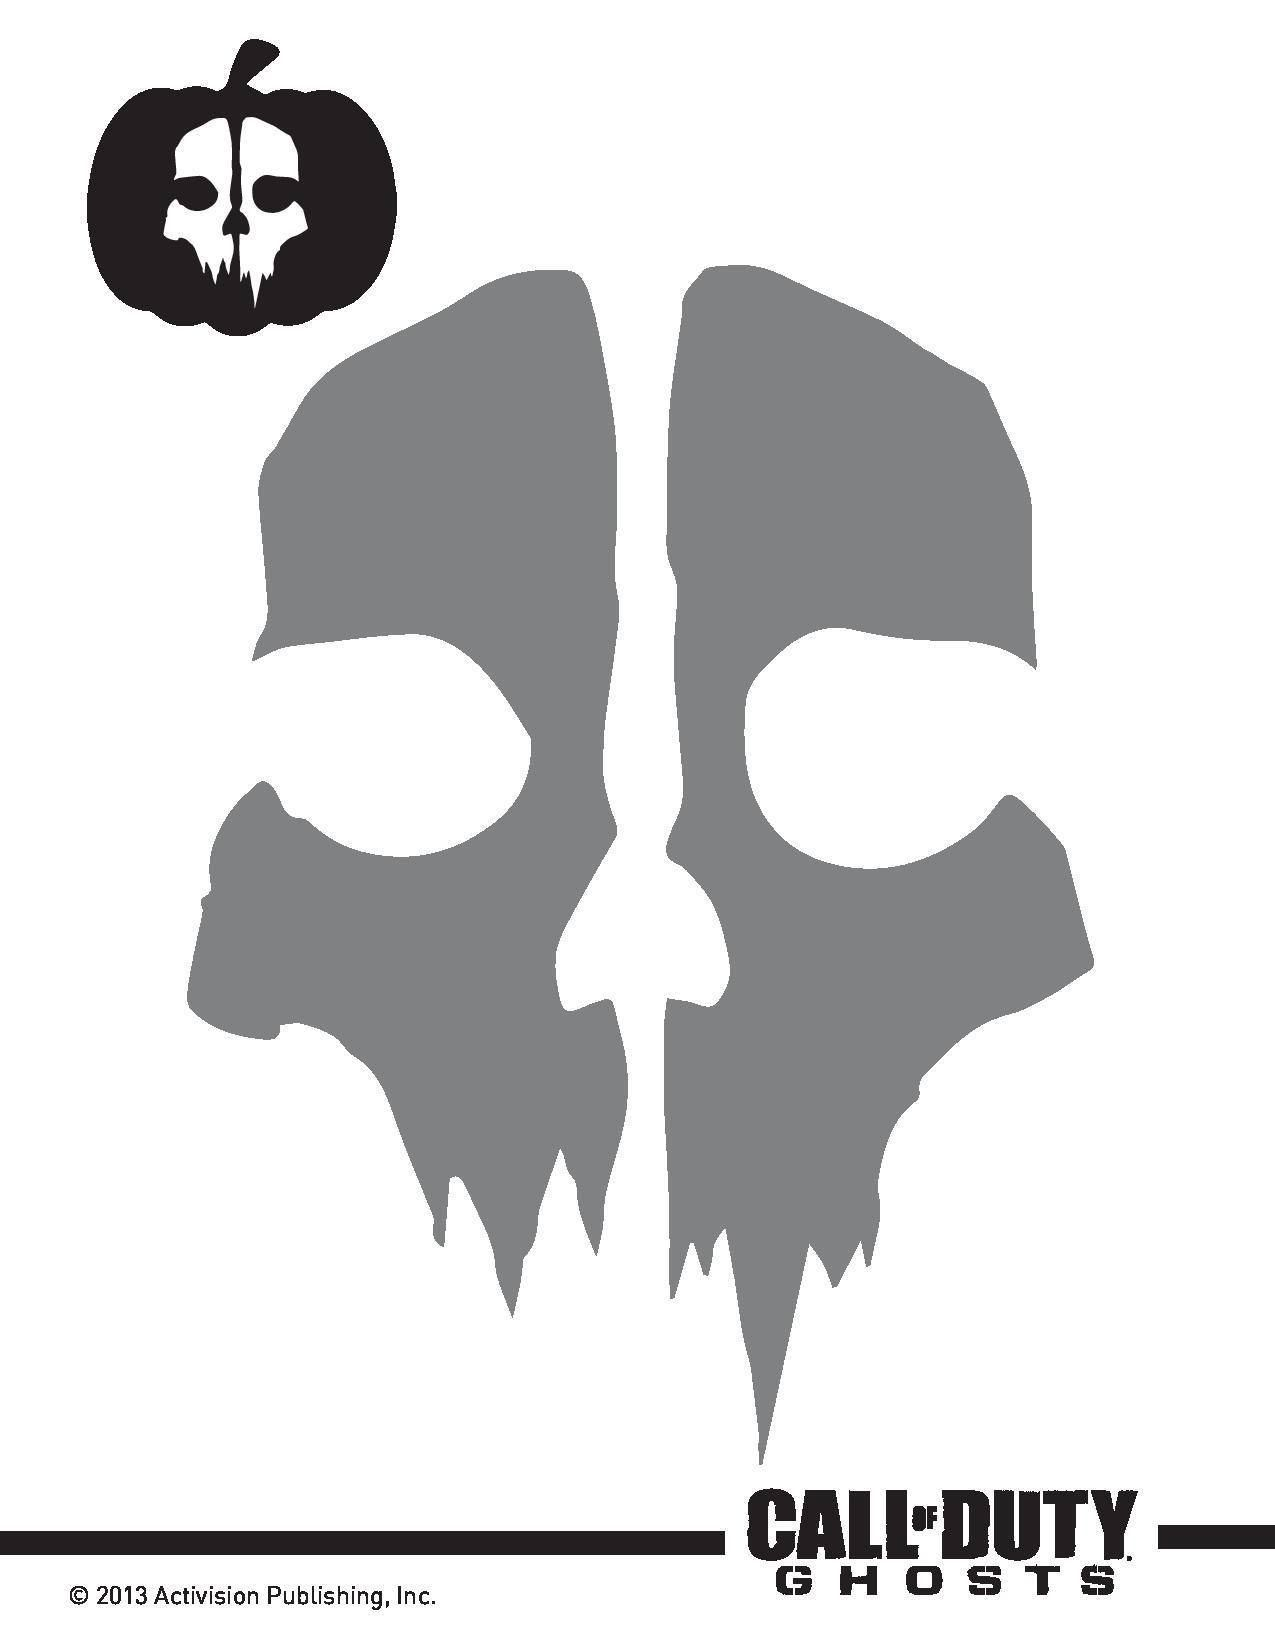 Call of Duty Ghosts Pumpkin Pattern | Pumpkin carving stencils ...